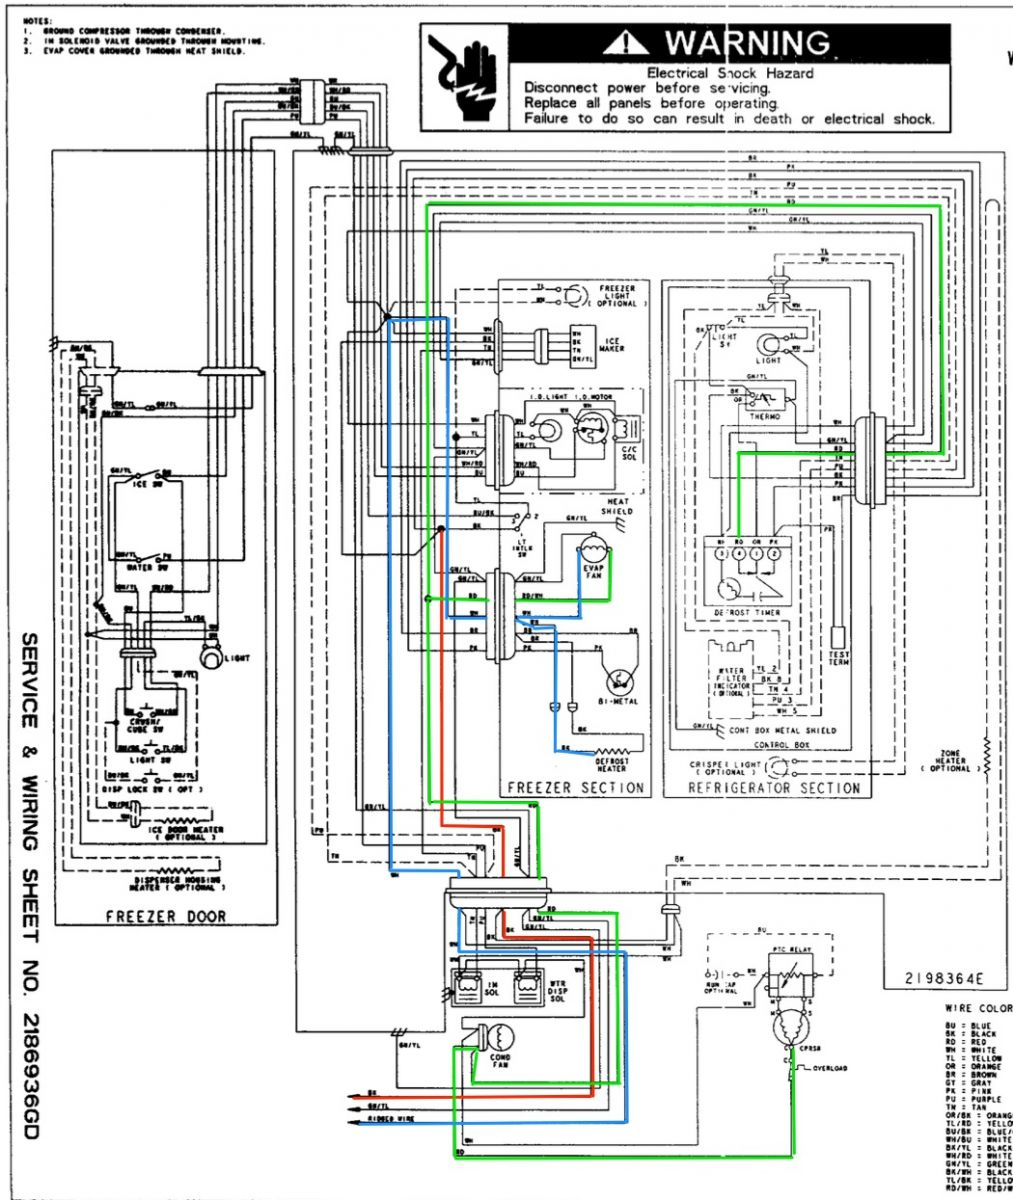 Whirlpool ED25RFXFW01 Refrigerator Wiring Diagram - The Appliantology  Gallery - Appliantology.org - A Master Samurai Tech Appliance Repair Dojo | Whirlpool Refrigerator Schematic Diagram |  | Appliantology